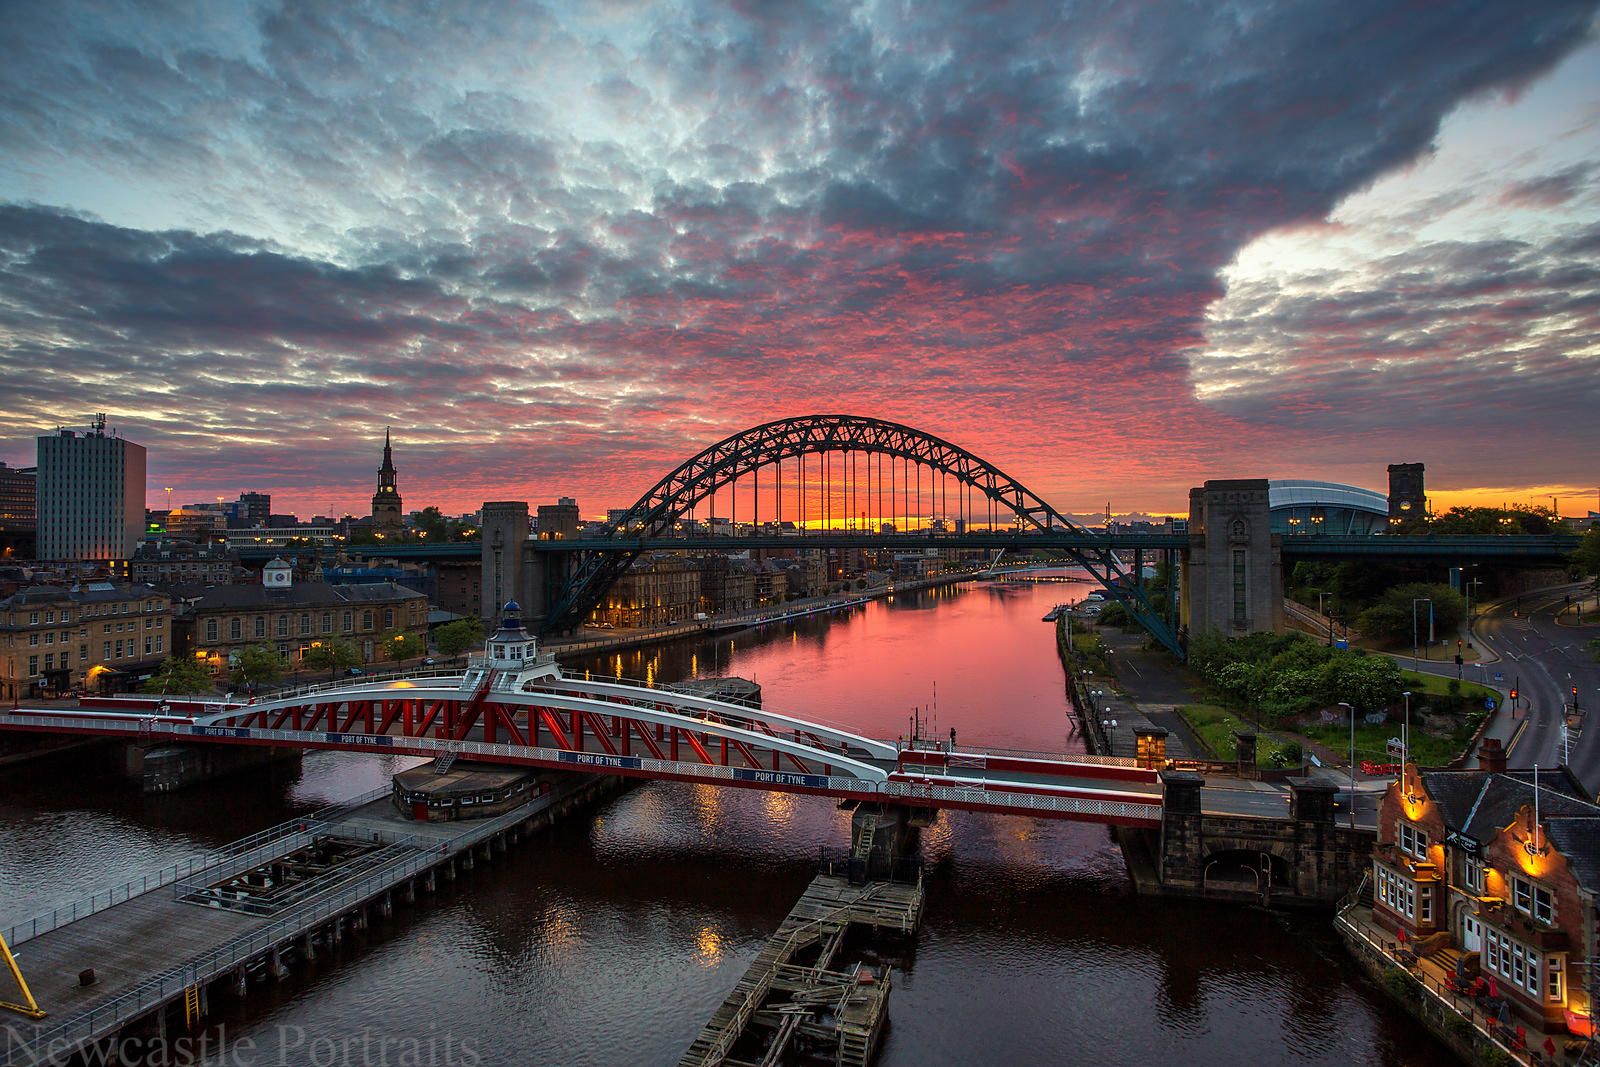 Sunrise over the Tyne